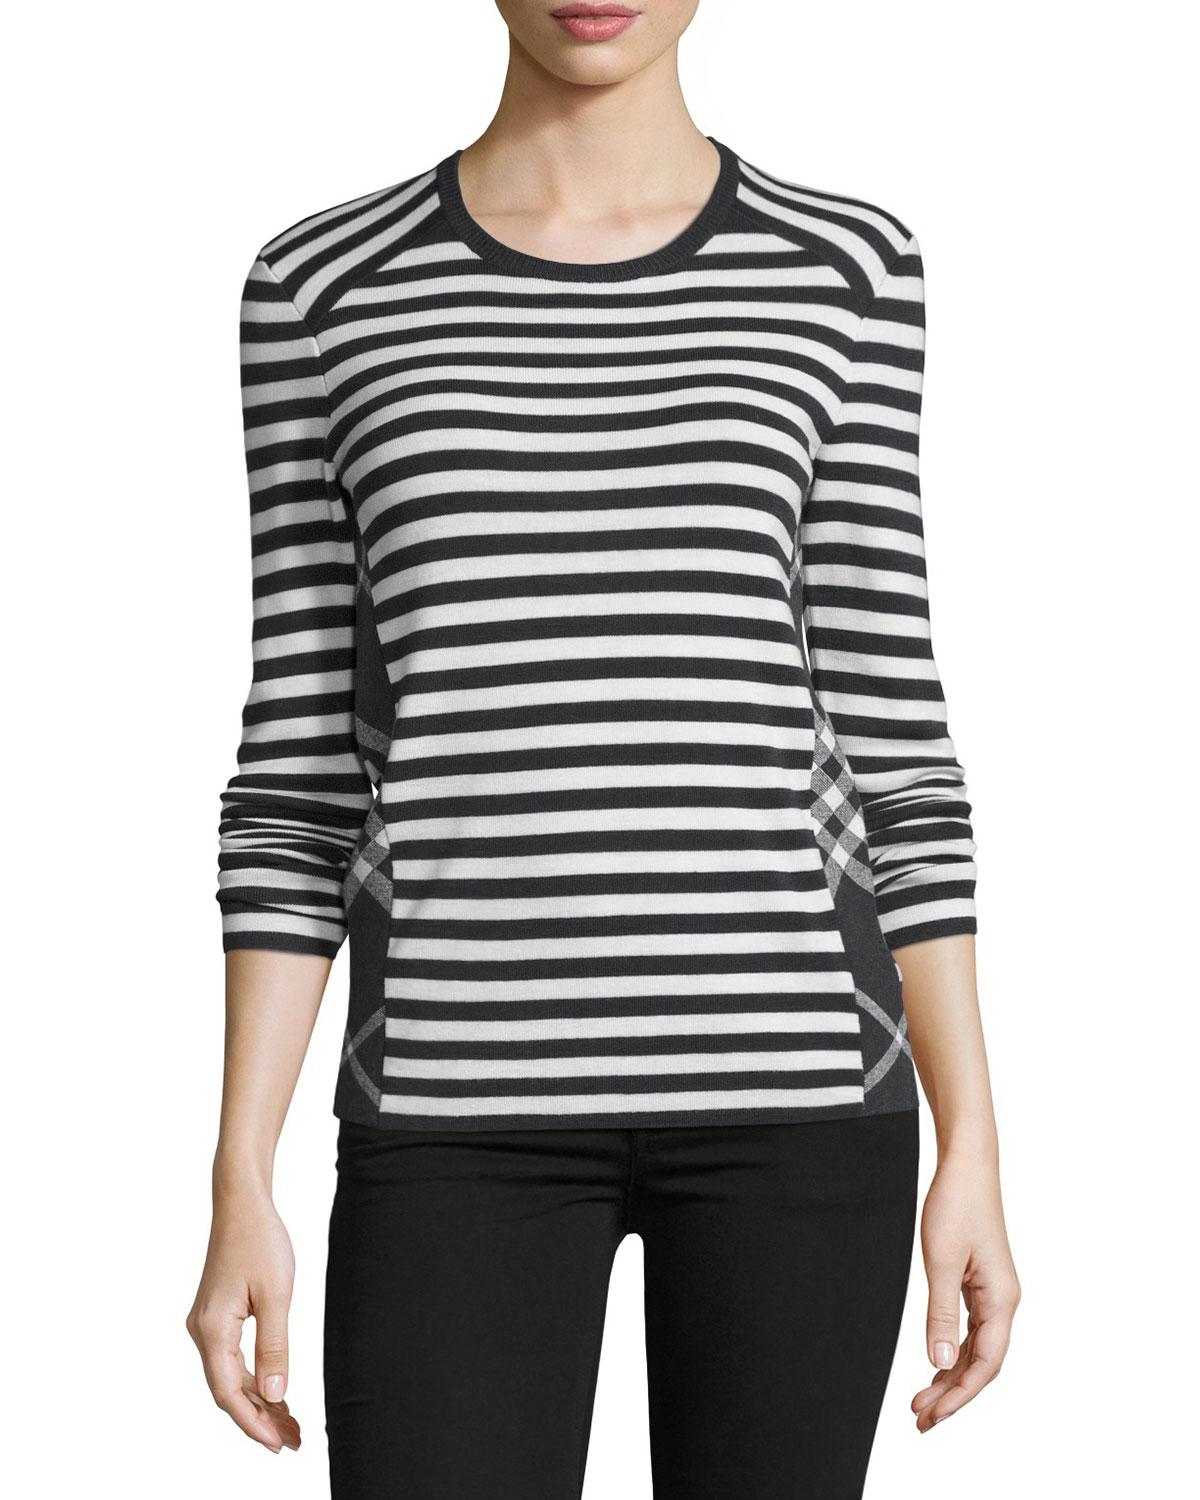 Long-Sleeve Mixed-Stripe Top, Black/White